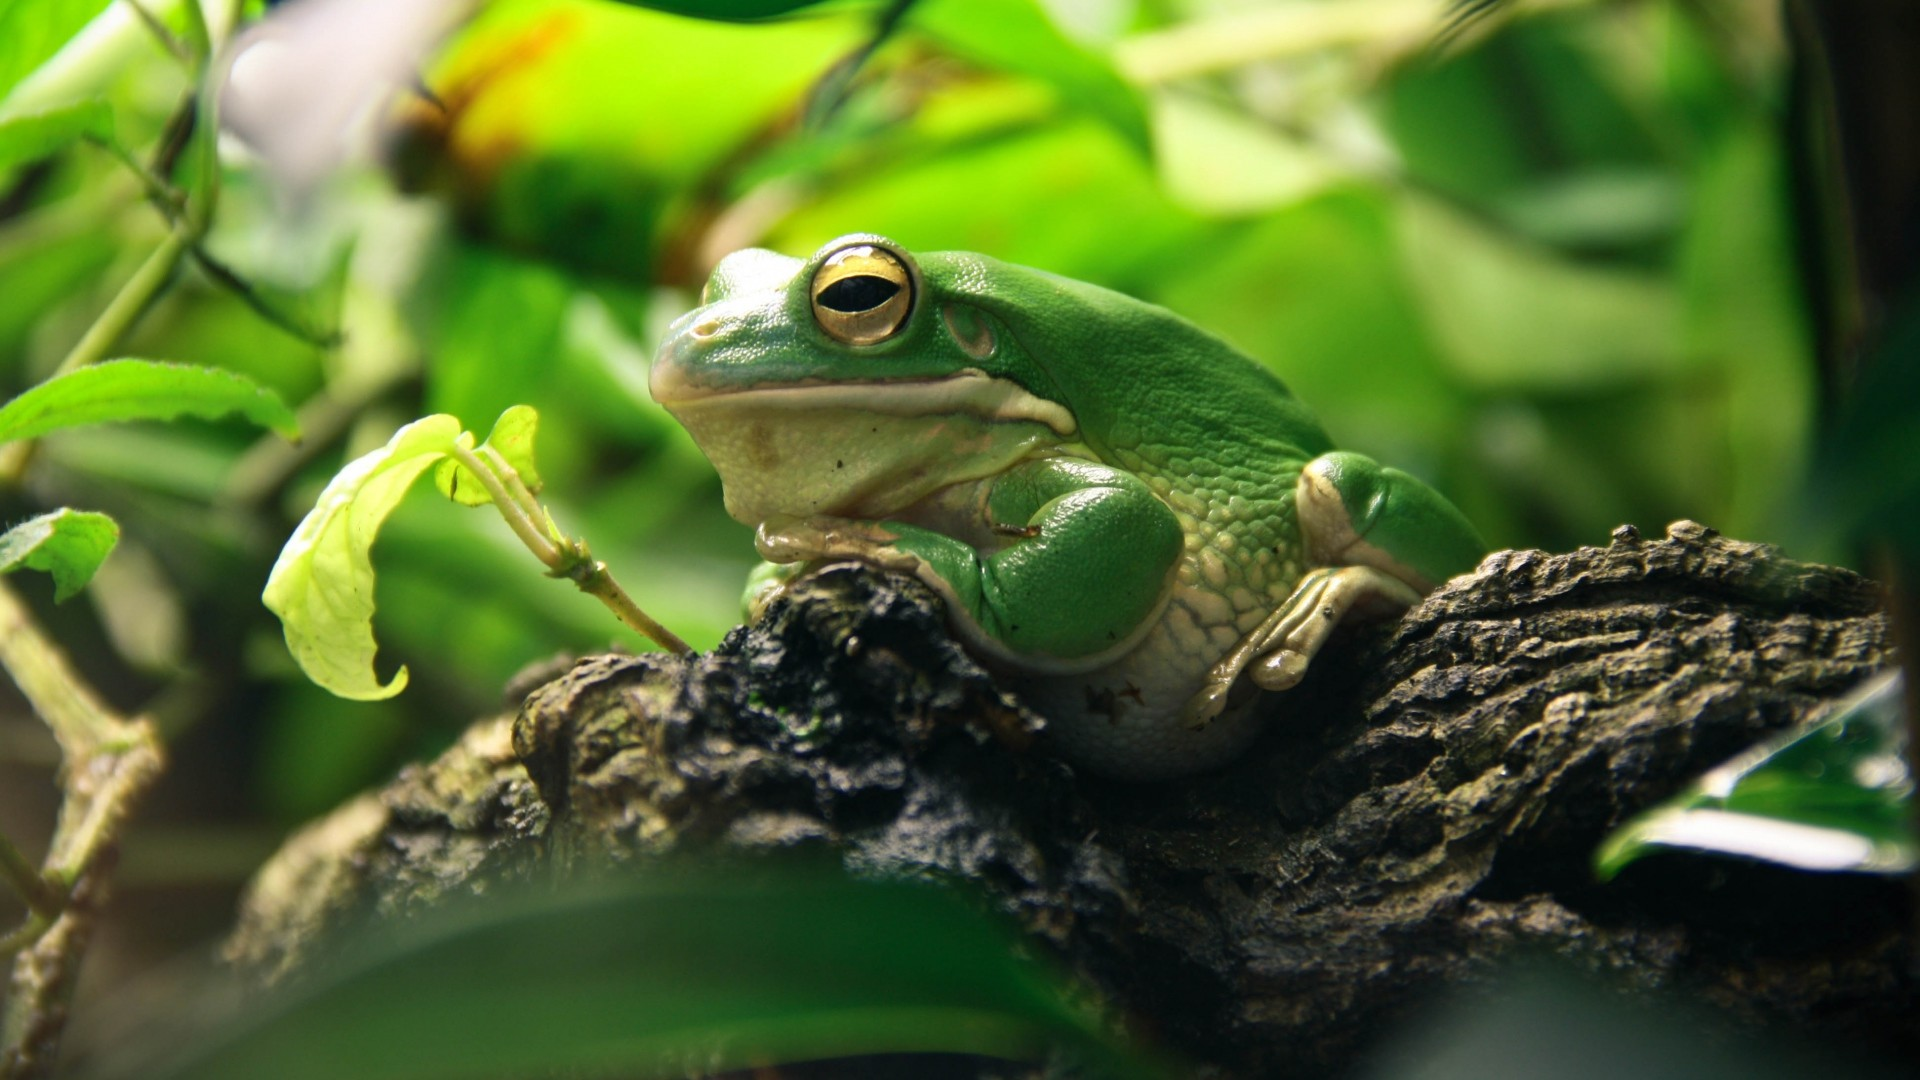 Res: 1920x1080, White-Lipped Tree Frog Wallpapers 6 - 1920 X 1080